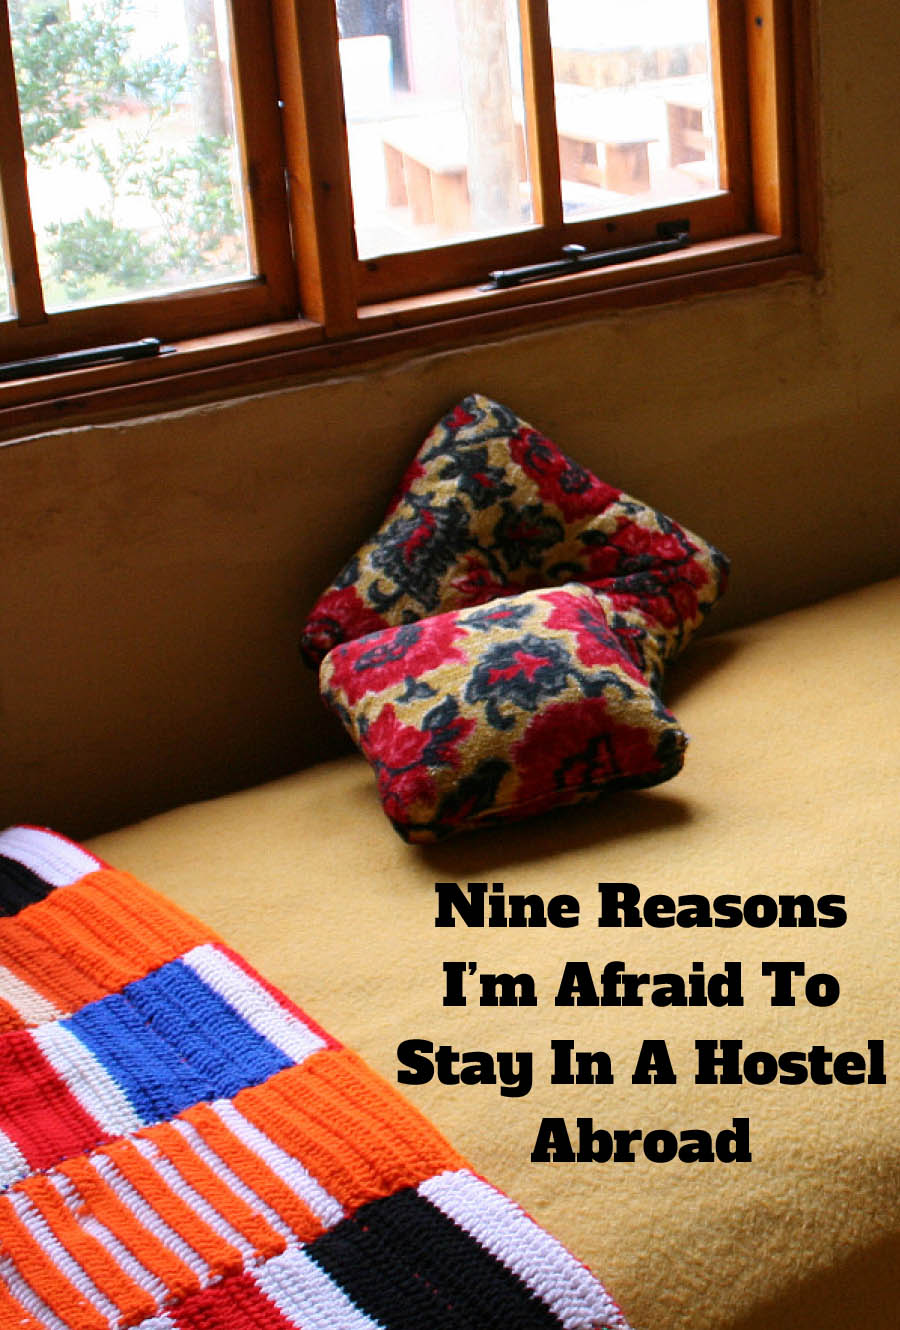 Nine Reasons I'm Afraid to Stay in a Hostel Abroad